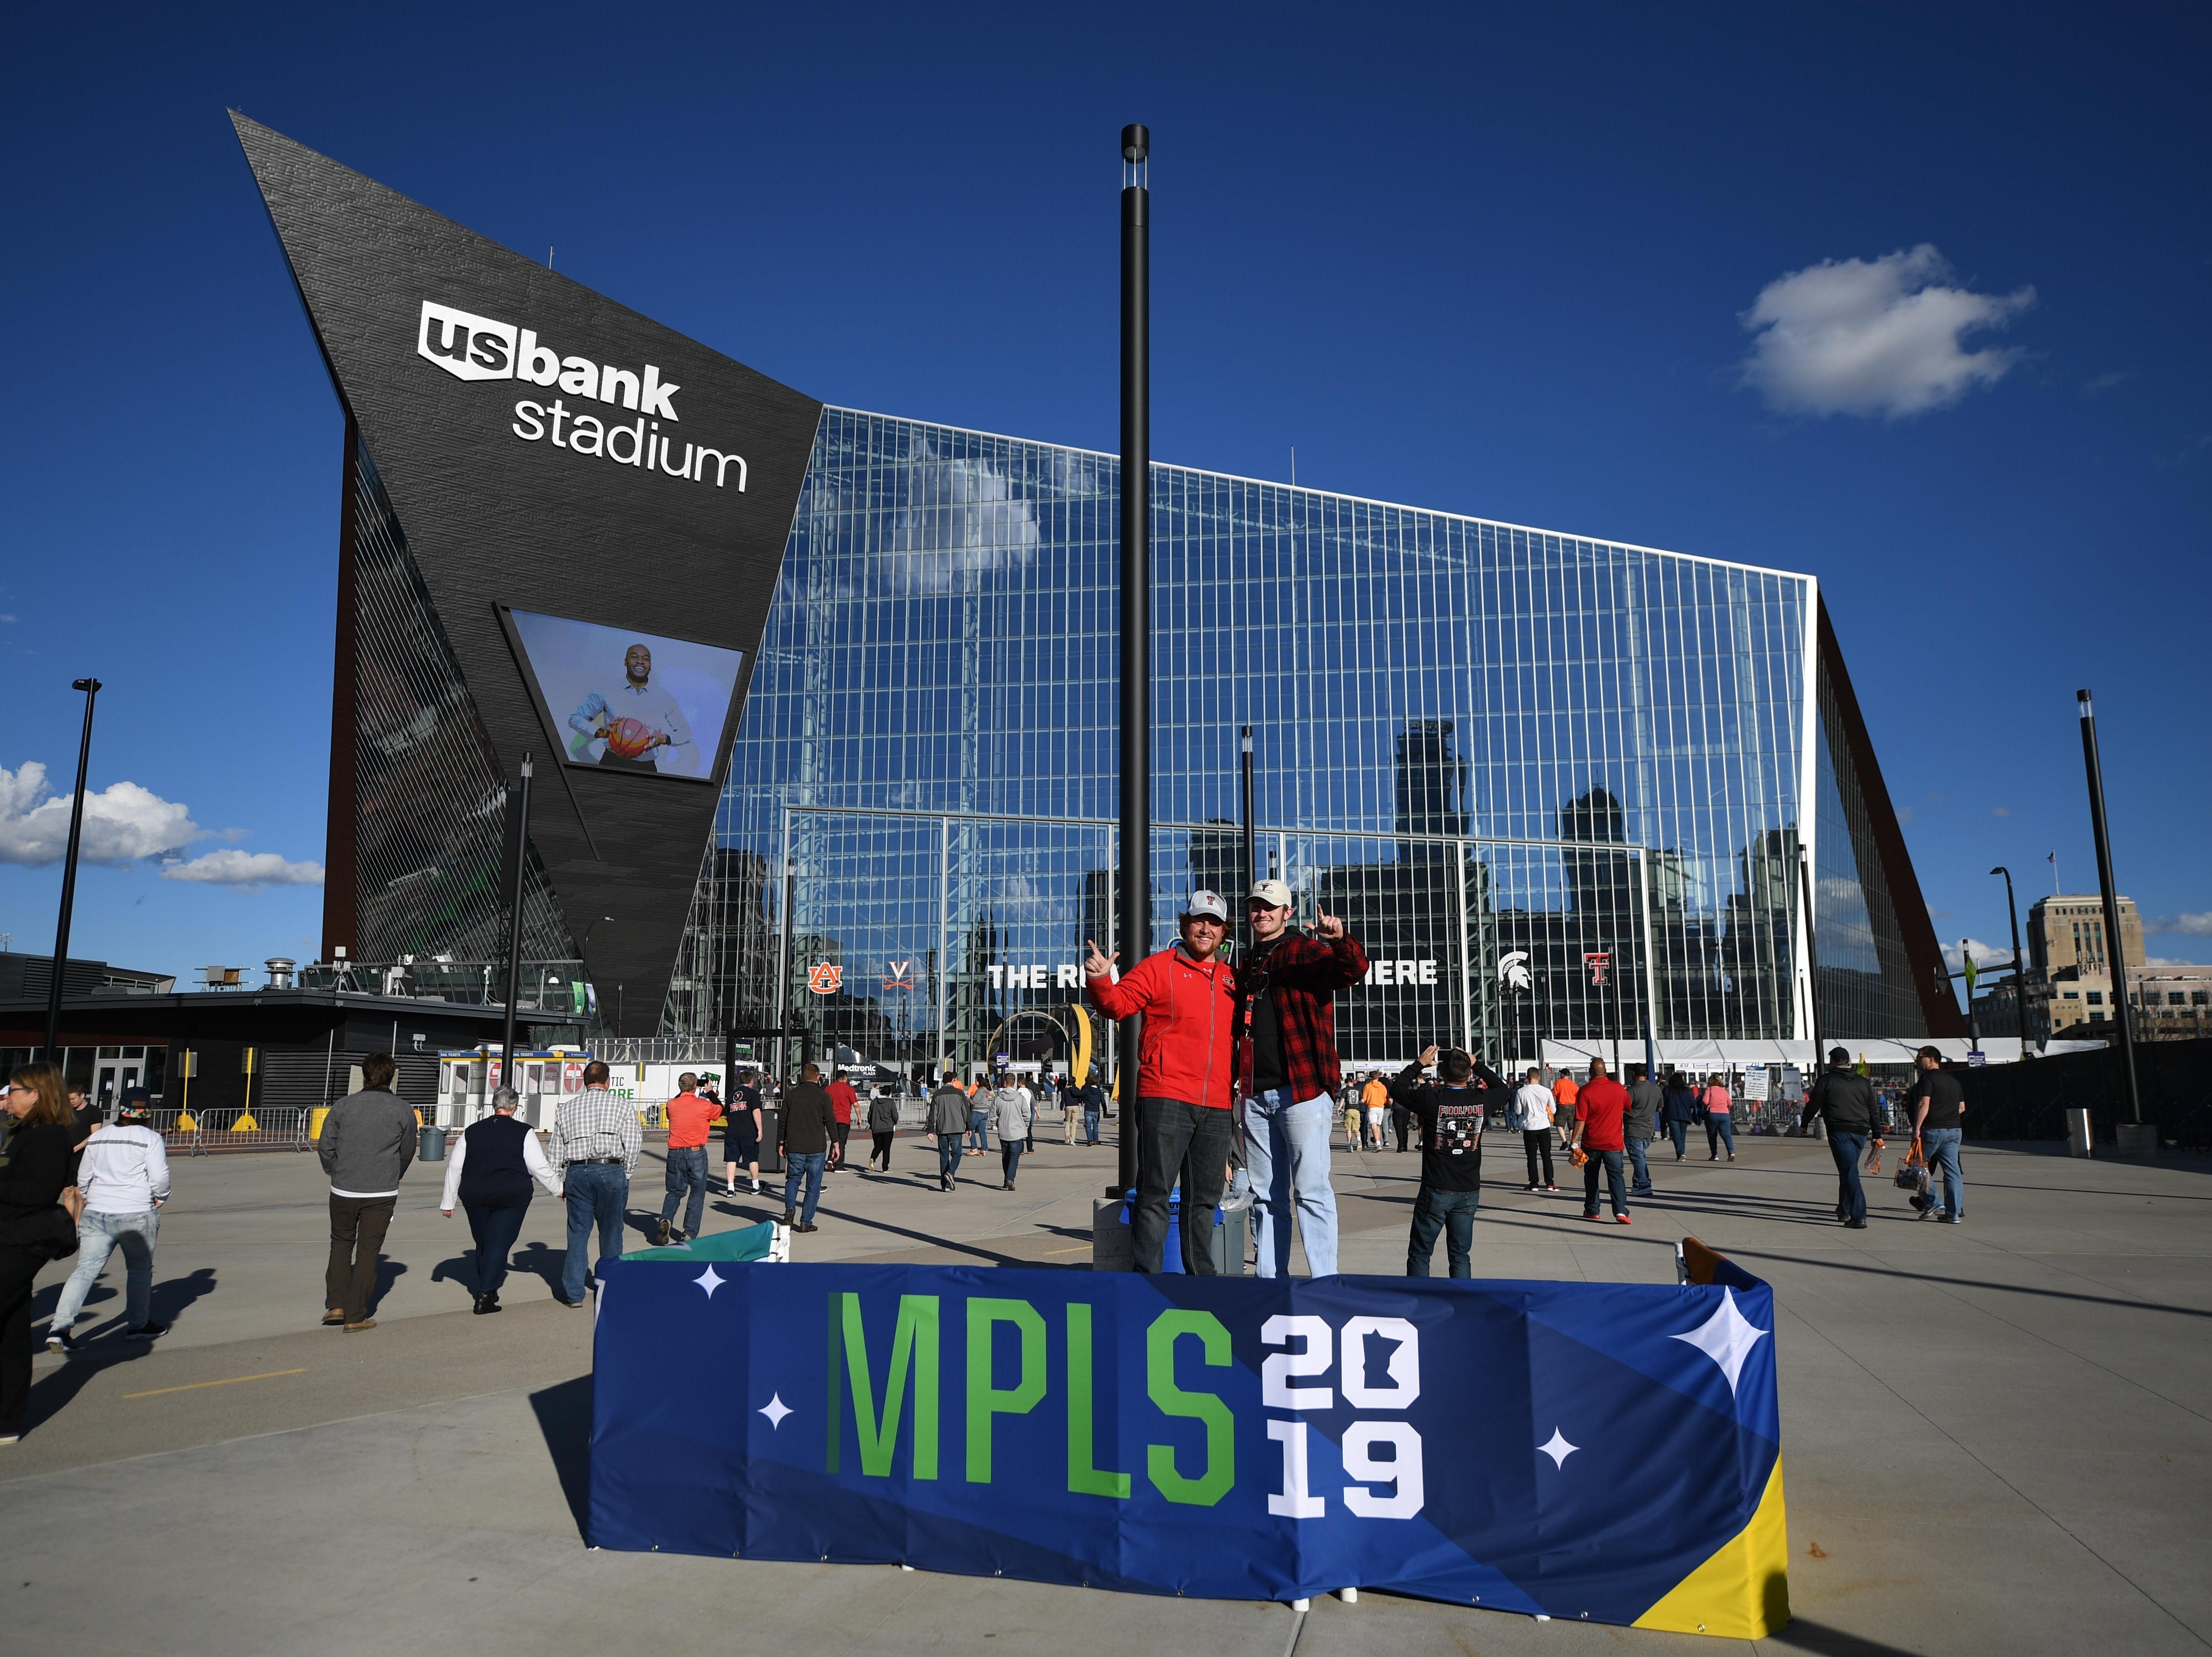 Apr 8, 2019; Minneapolis, MN, USA; Texas Tech Red Raiders fans pose for a photo outside before the championship game of the 2019 men's Final Four against the Virginia Cavaliers at US Bank Stadium. Mandatory Credit: Shanna Lockwood-USA TODAY Sports